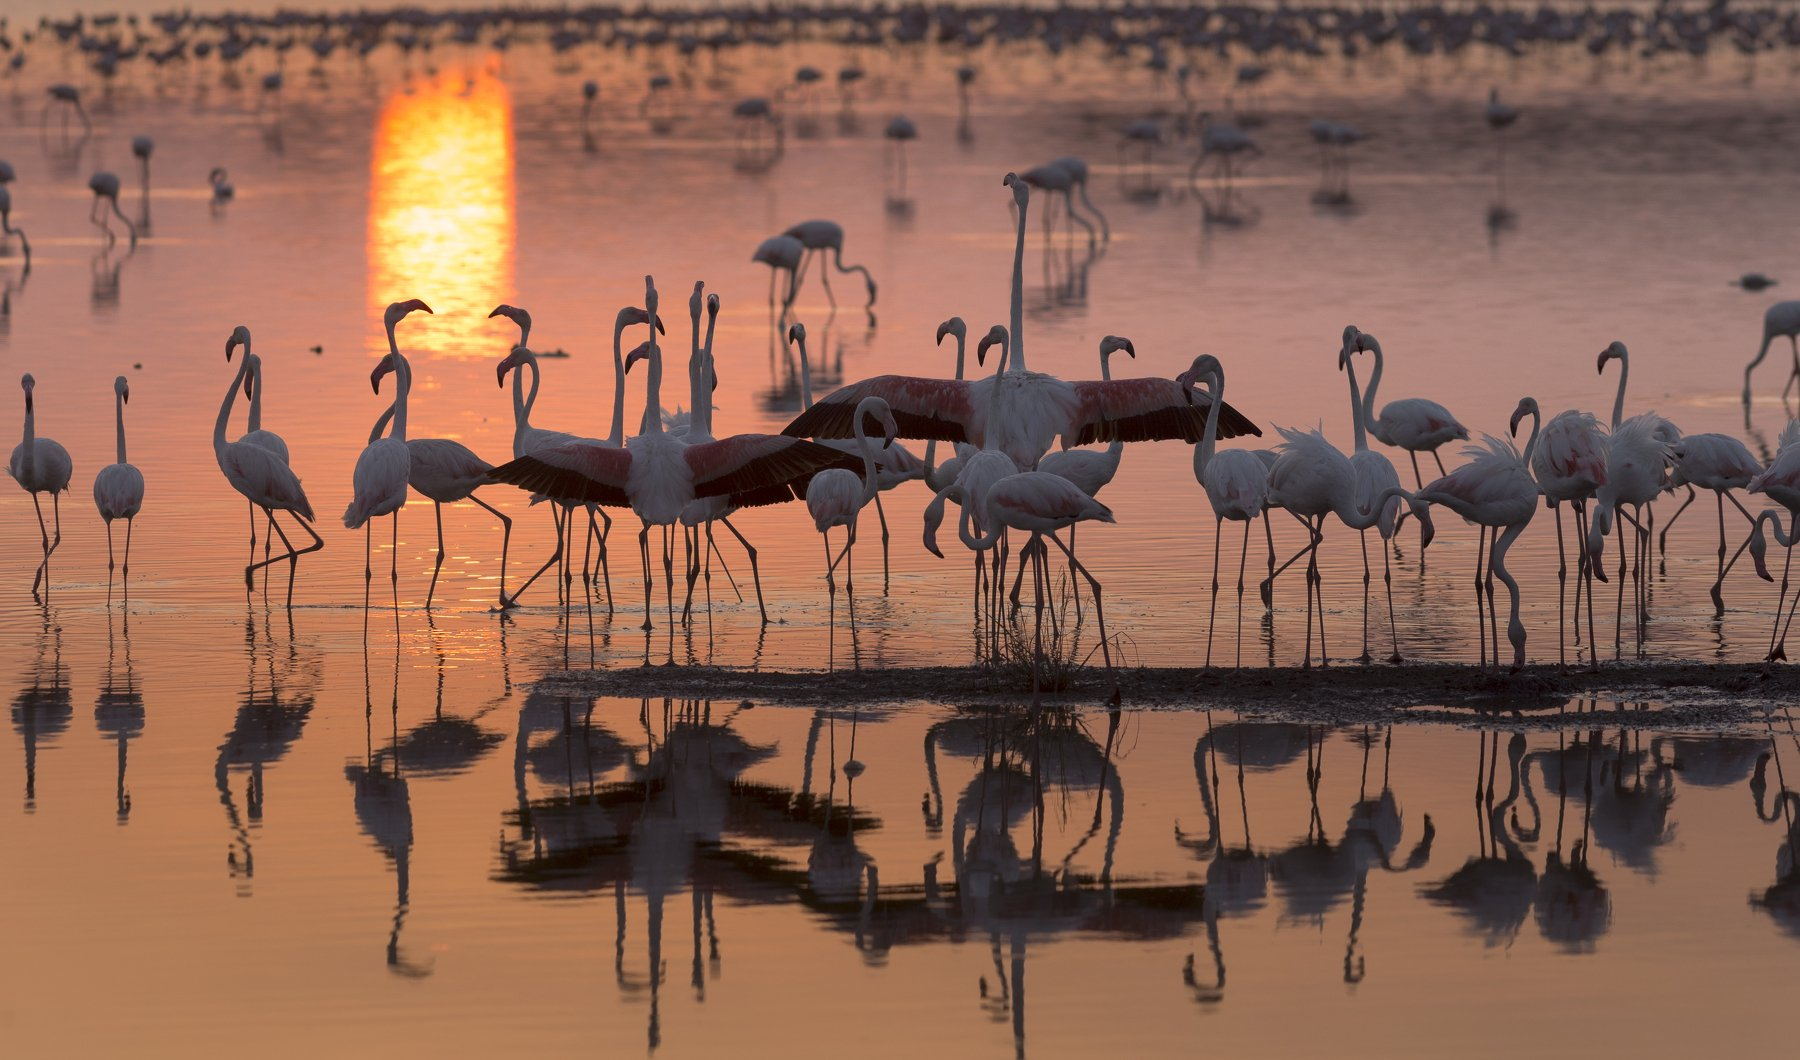 flamingo, flamingos, lake, water, phoenicopterus, bird, sunrise, animal, pink, wild, sunset, flock, national, long, park, nature, ruber, background, birds, closeup, colorful, group, Гайдабуров Сергей